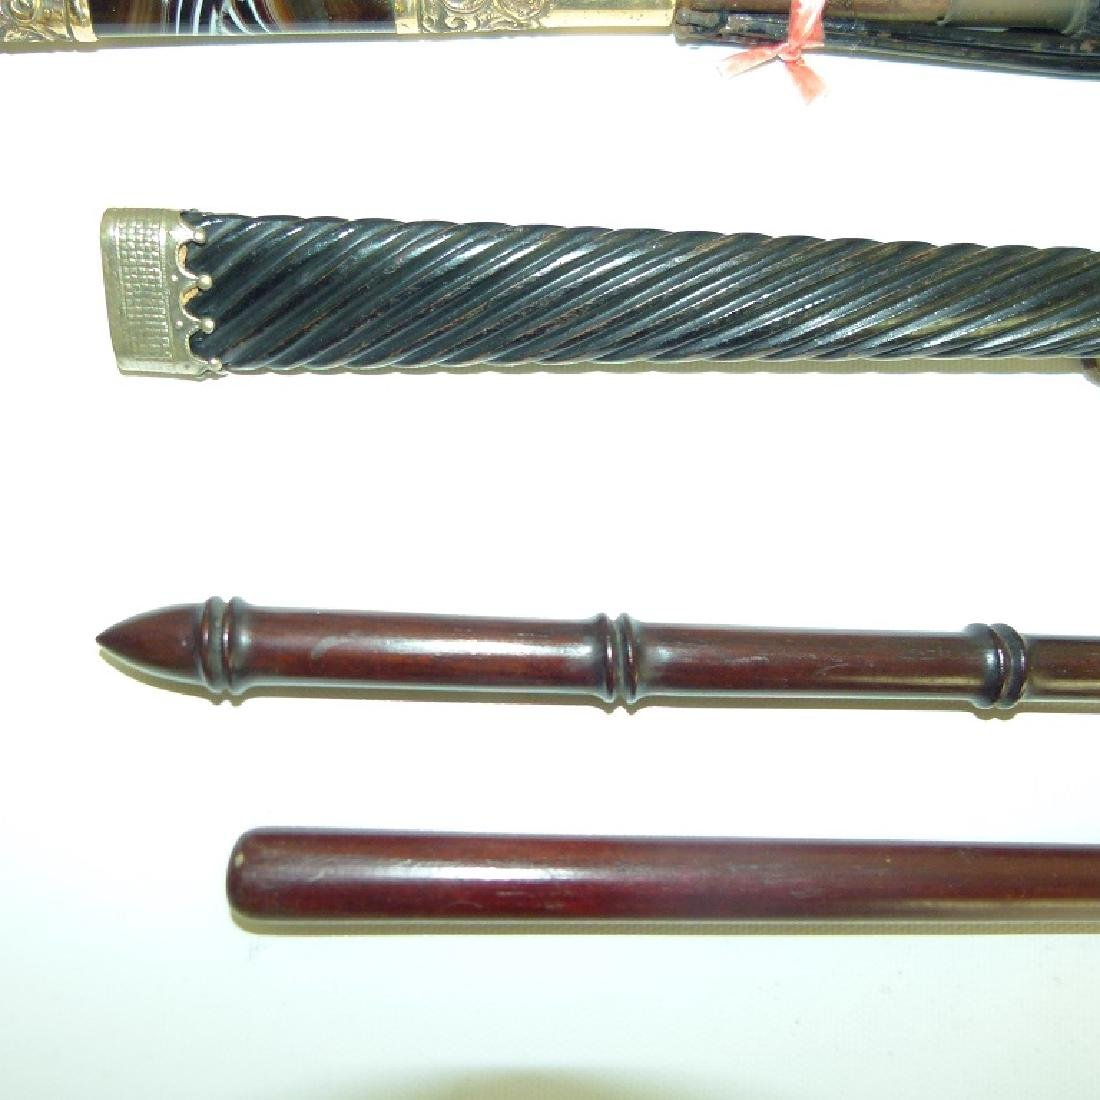 (6) VICT. REPOSSE PLATED/HORN PARASOLS/SWAGGER STICKS - 4